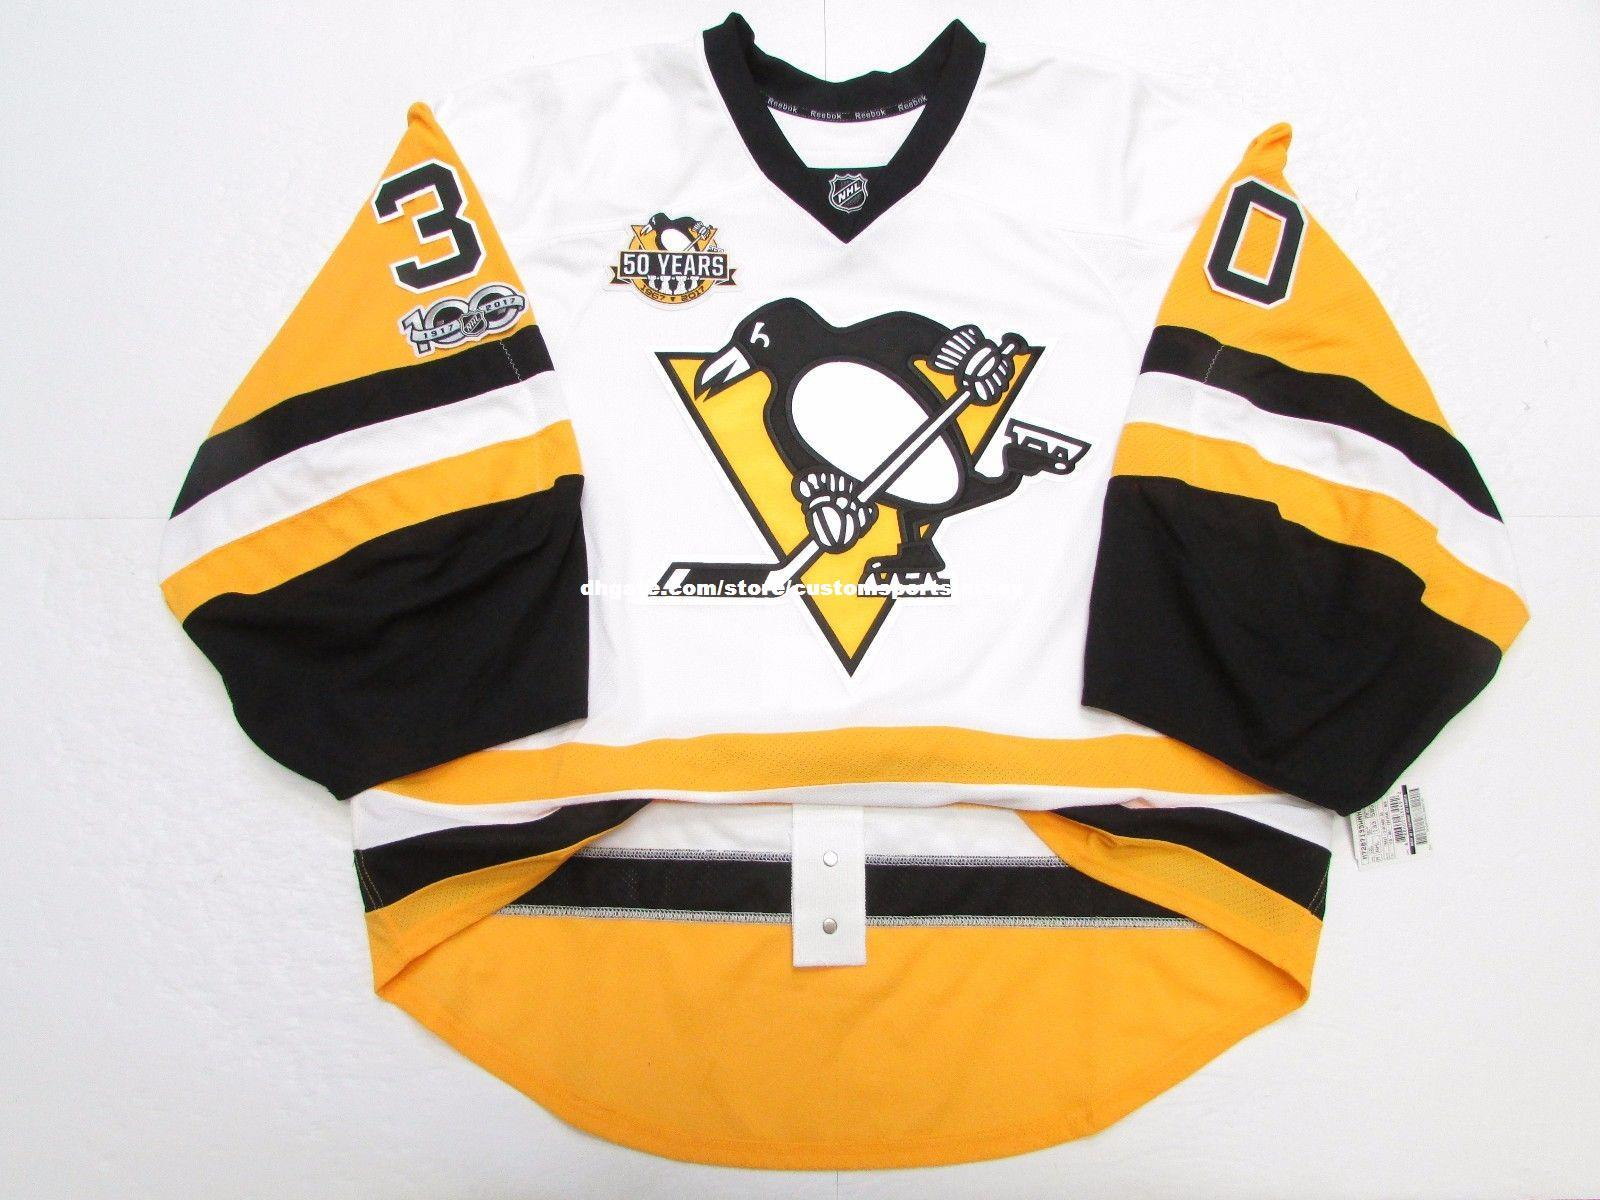 c0e065afc51 Cheap Custom MURRAY PITTSBURGH PENGUINS 100 ANNIVERSARY JERSEY ...